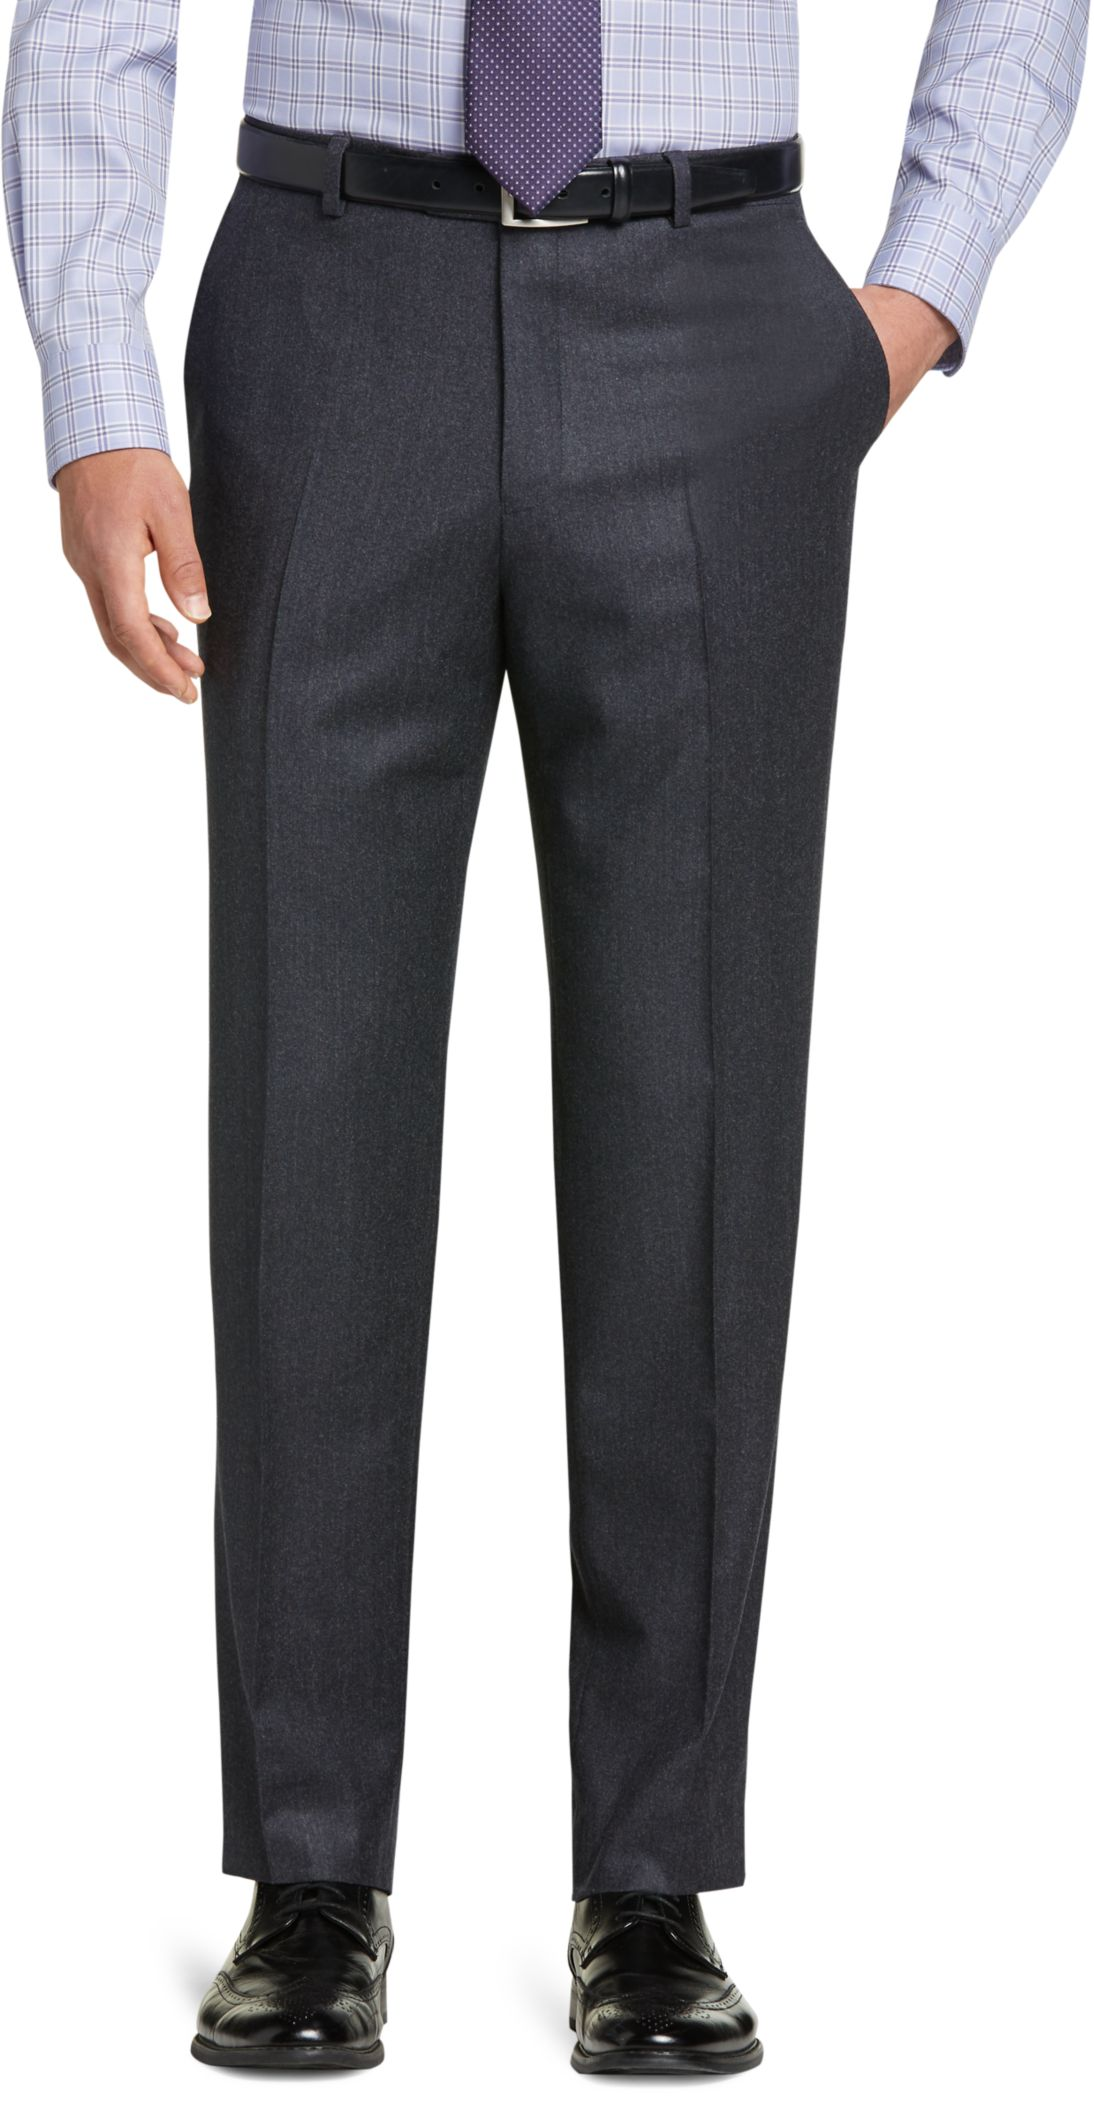 Reserve Collection Tailored Fit Flat Front Micro Tweed Dress Pants